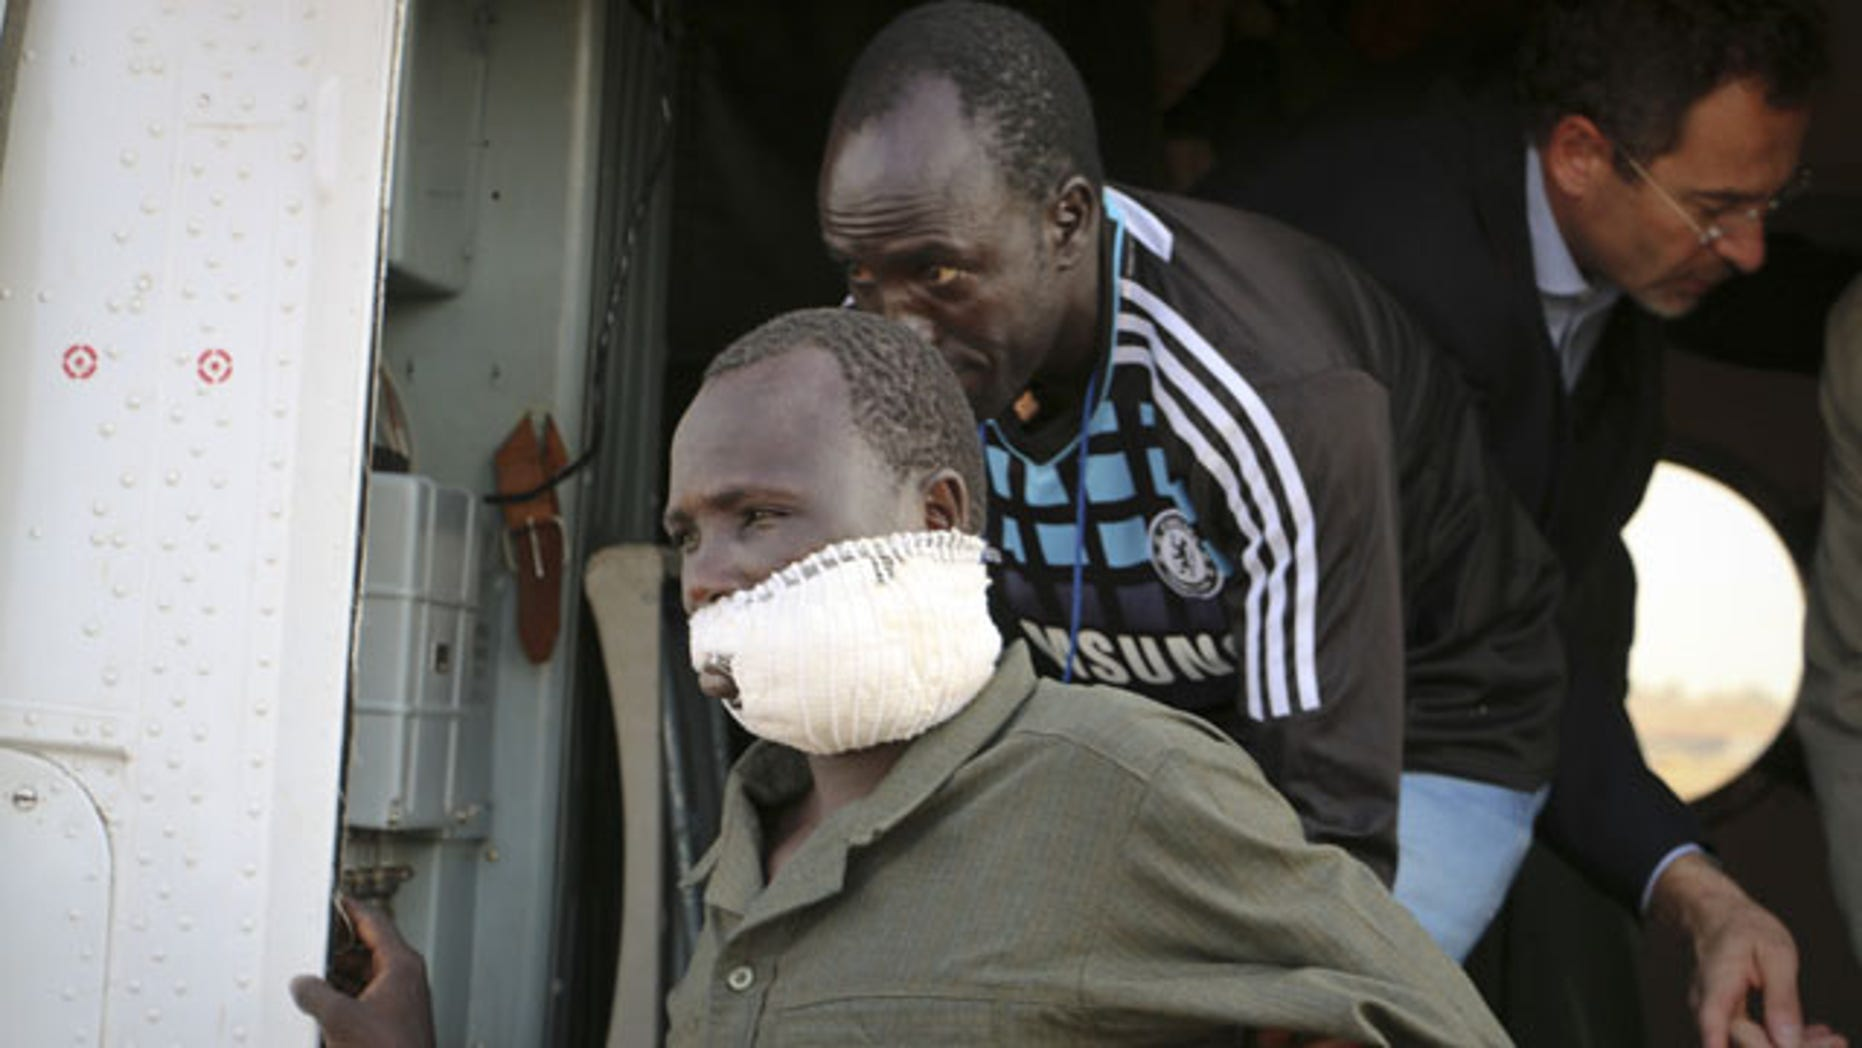 December 22, 2013: In this photo released by the United Nations Mission in South Sudan (UNMISS), wounded civilians from Bor, the capital of Jonglei state and said to be the scene of fierce clashes between government troops and rebels, are assisted after being transported by U.N. helicopter to Juba, South Sudan (AP/UNMISS)